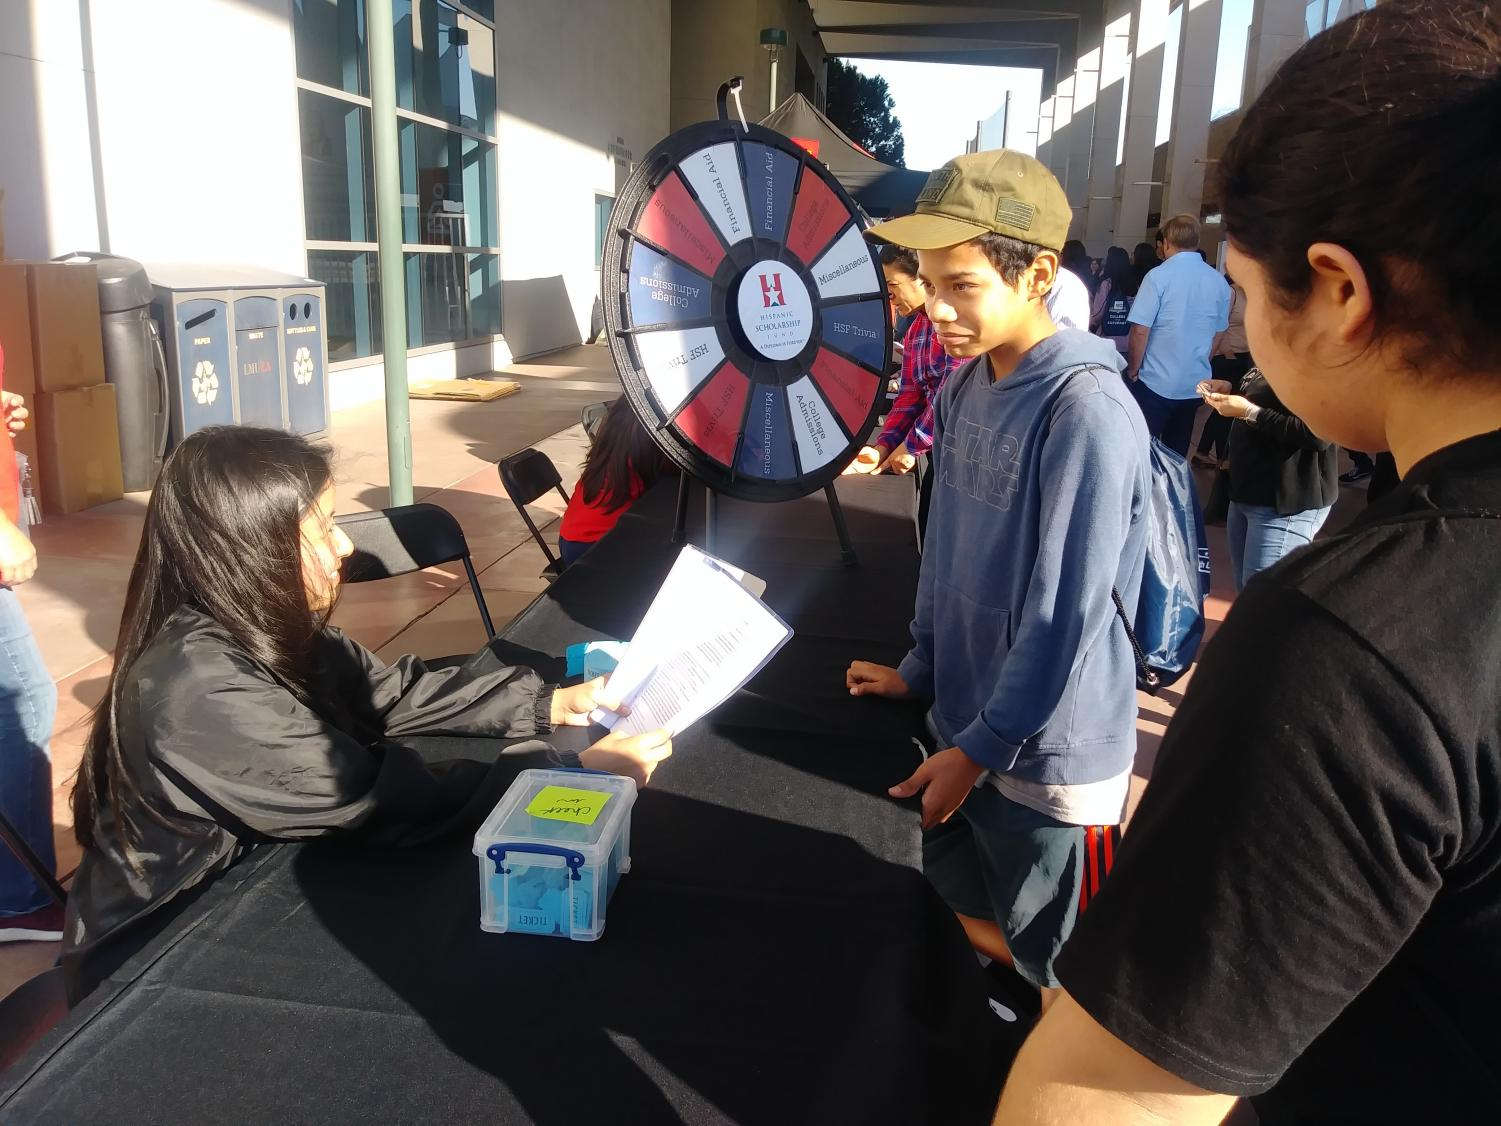 A College Prep Saturday participant plays an HSF trivia game, in which he had to spin the wheel and answer questions based on the categories.